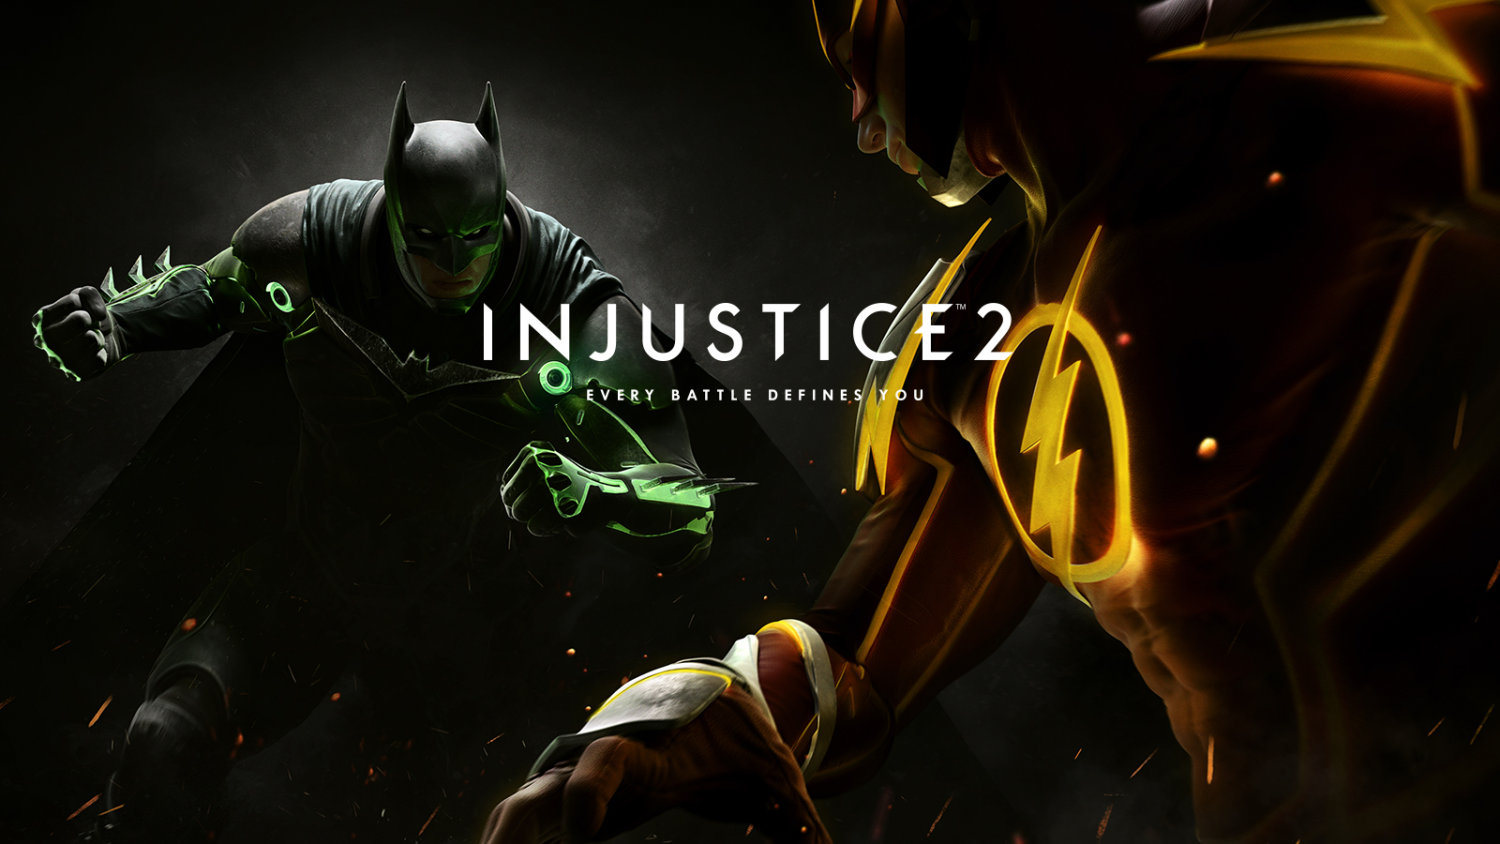 Official Injustice 2 banner.